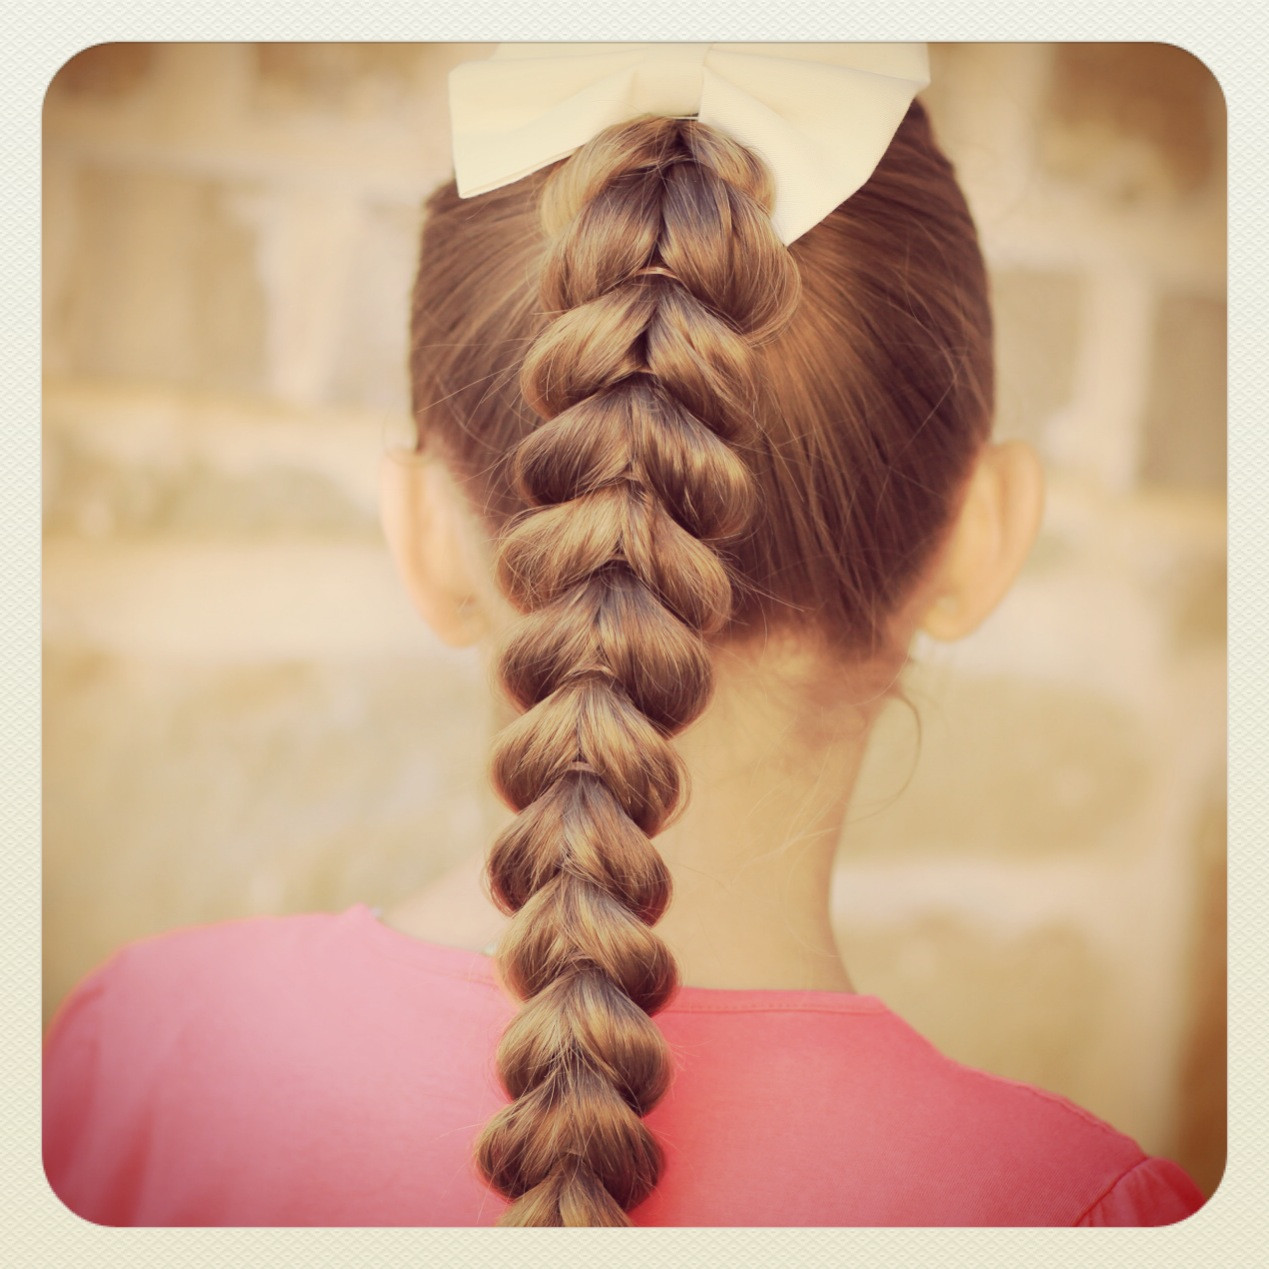 Best ideas about Really Easy Hairstyles . Save or Pin Pull Through Braid Easy Hairstyles Now.